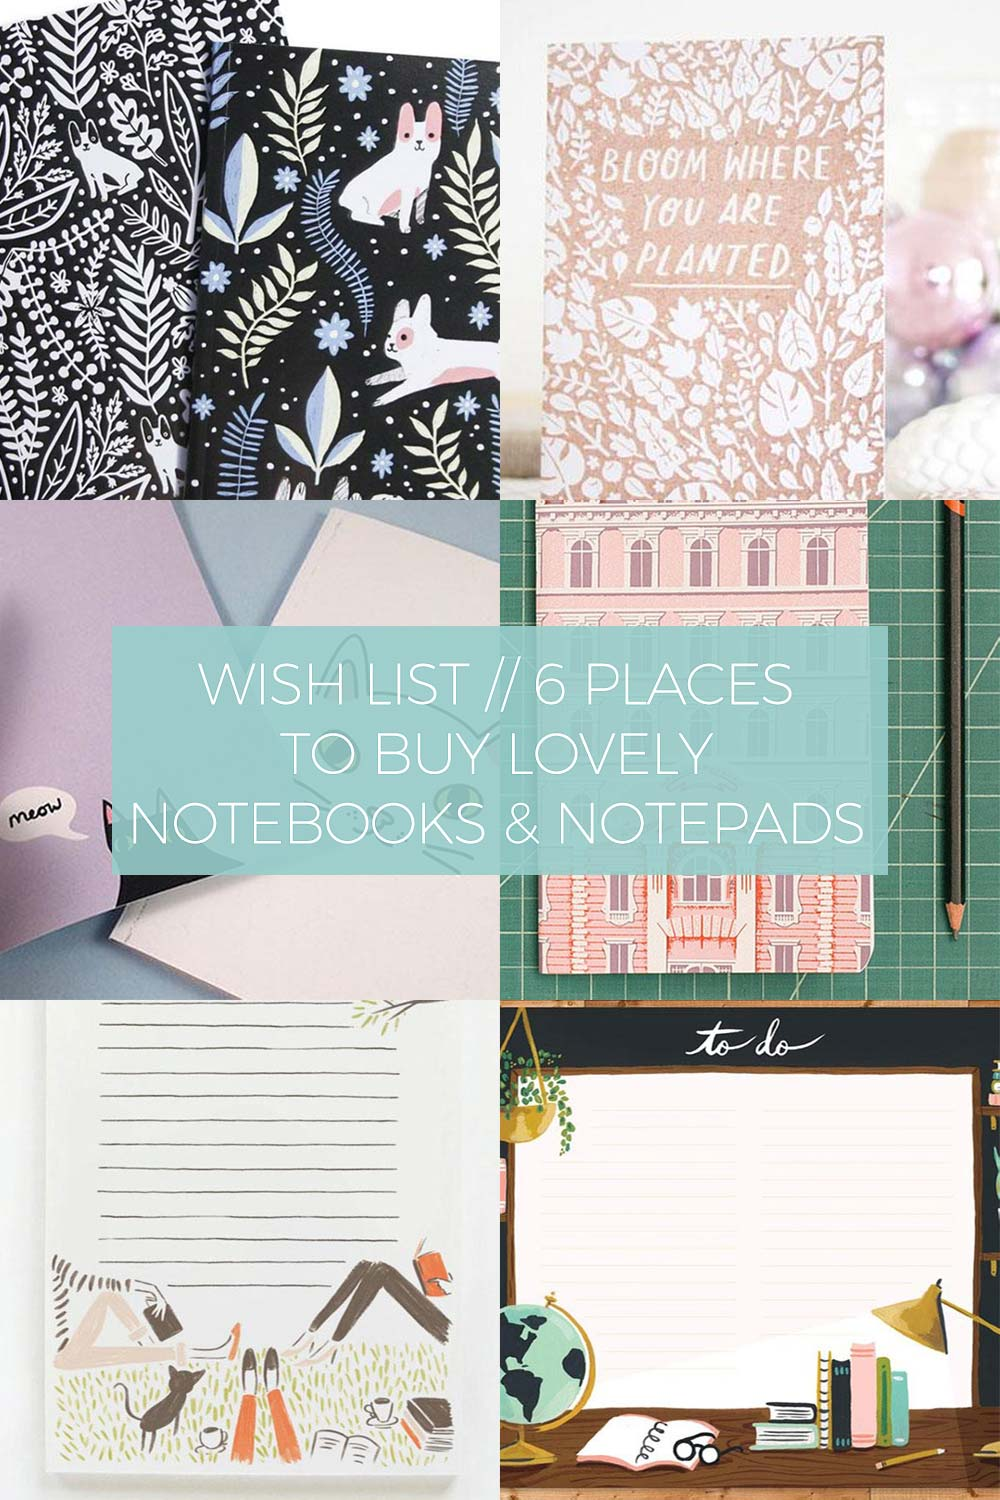 6 Places to Buy Lovely Notebooks & Notepads // Wish List